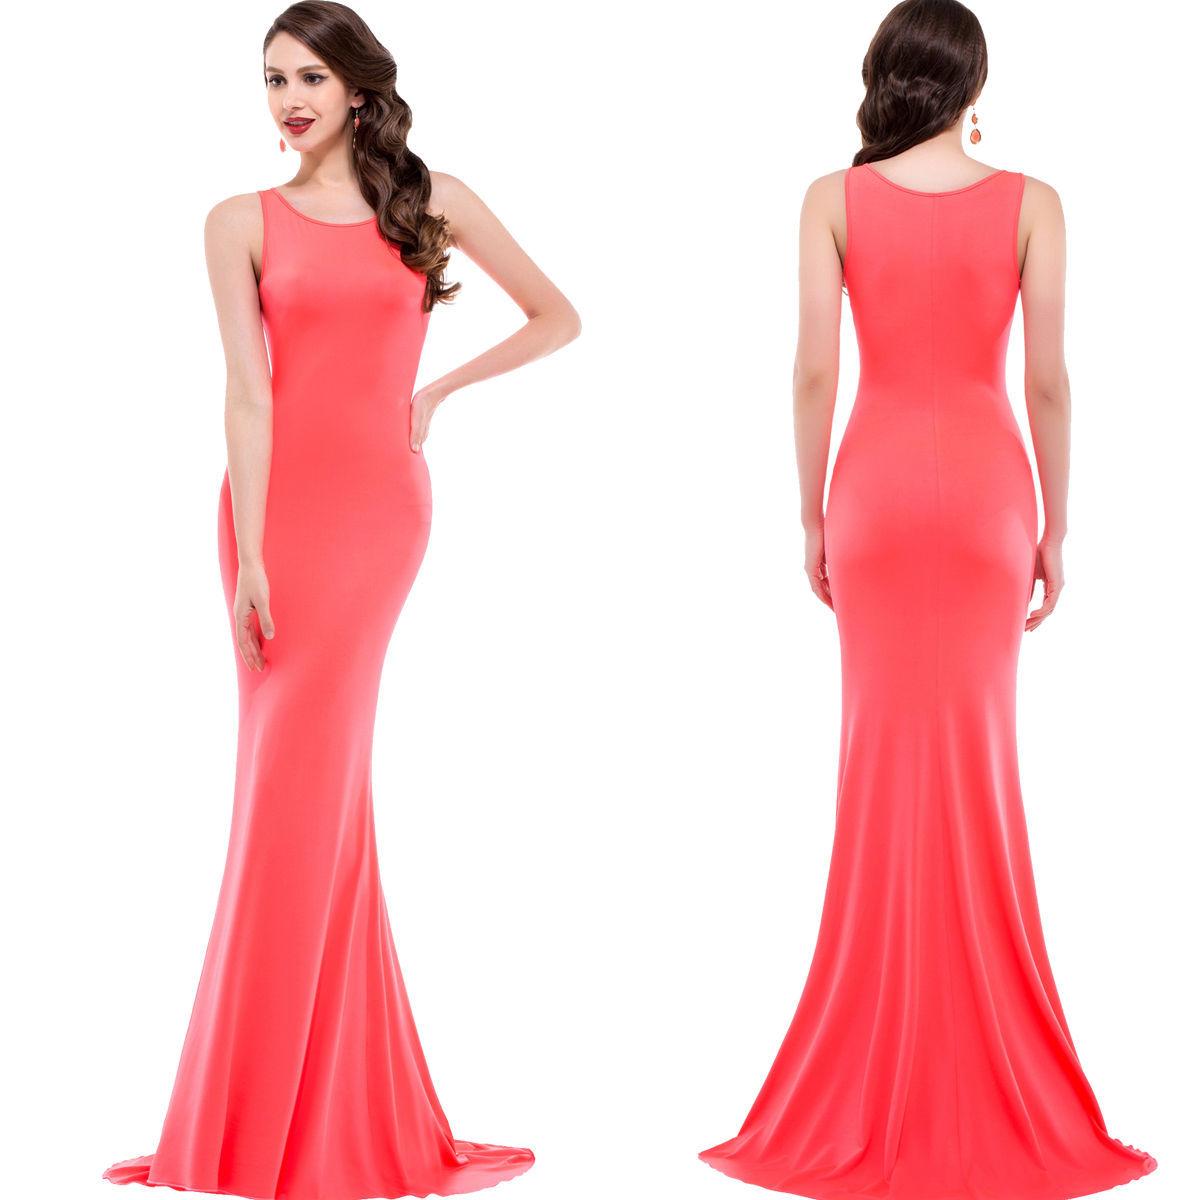 Centre bodycon size wedding dresses plus long marks and